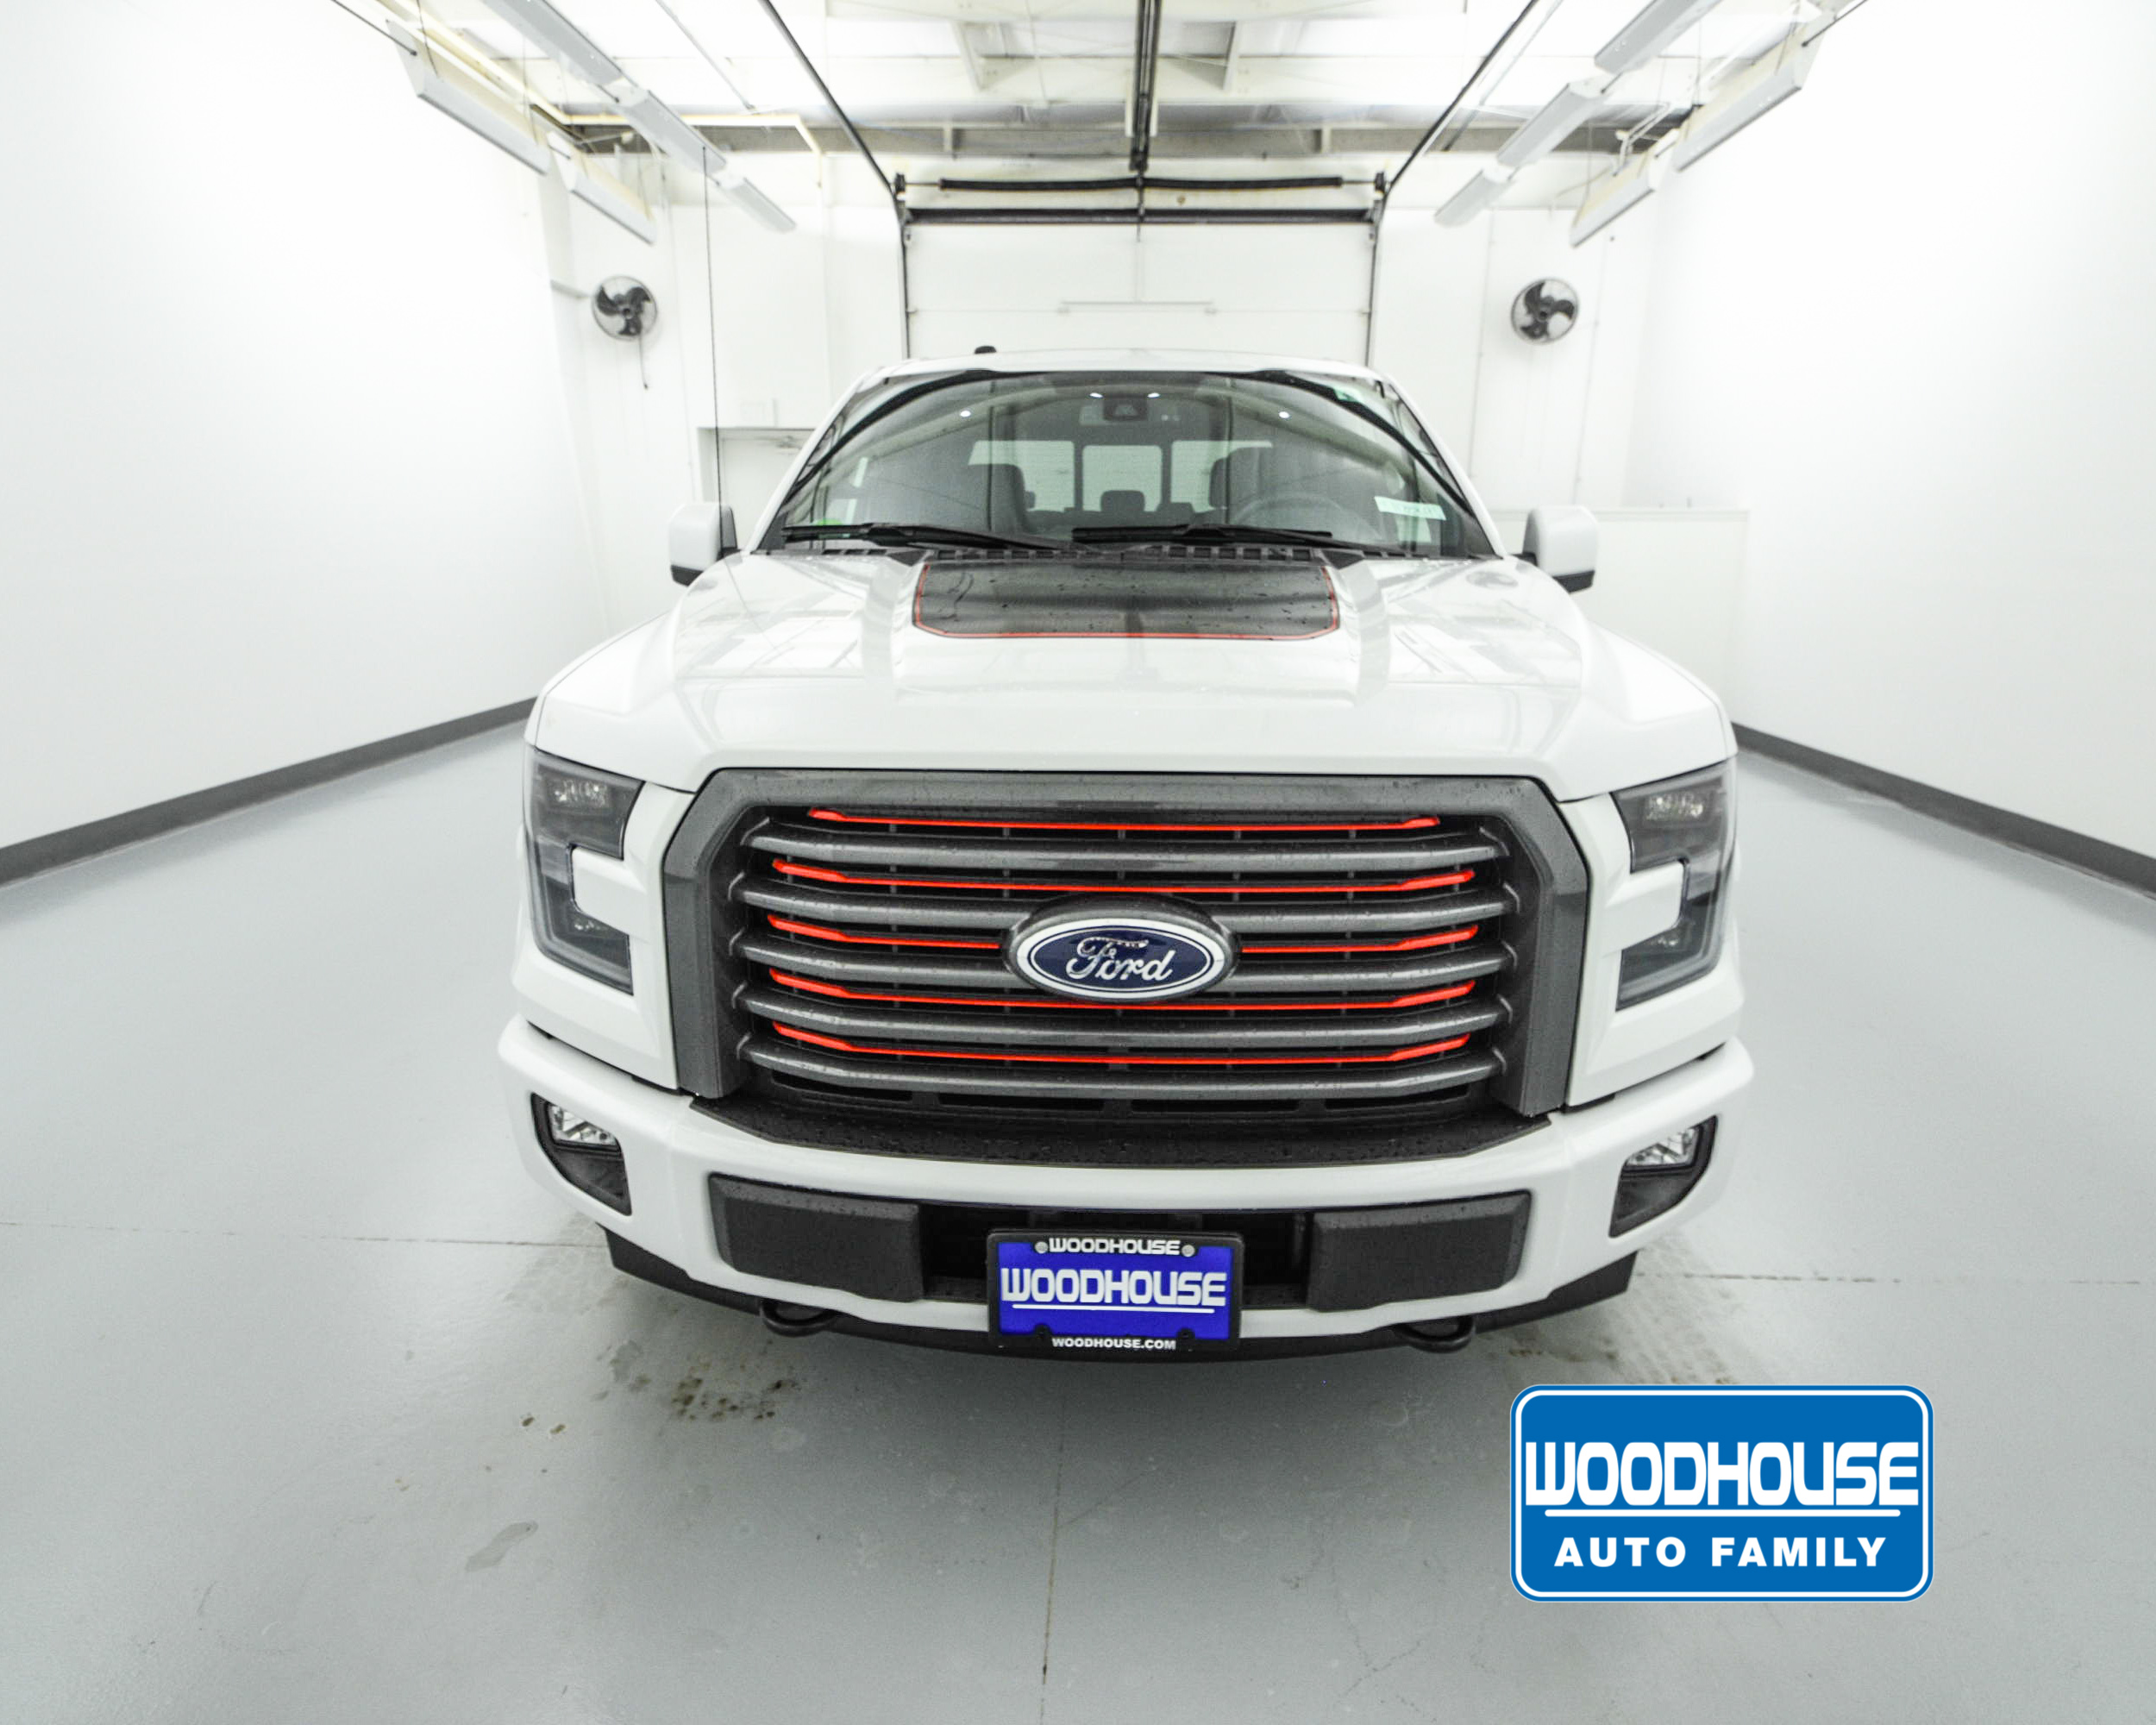 Ford F 150 For Sale Woodhouse Auto